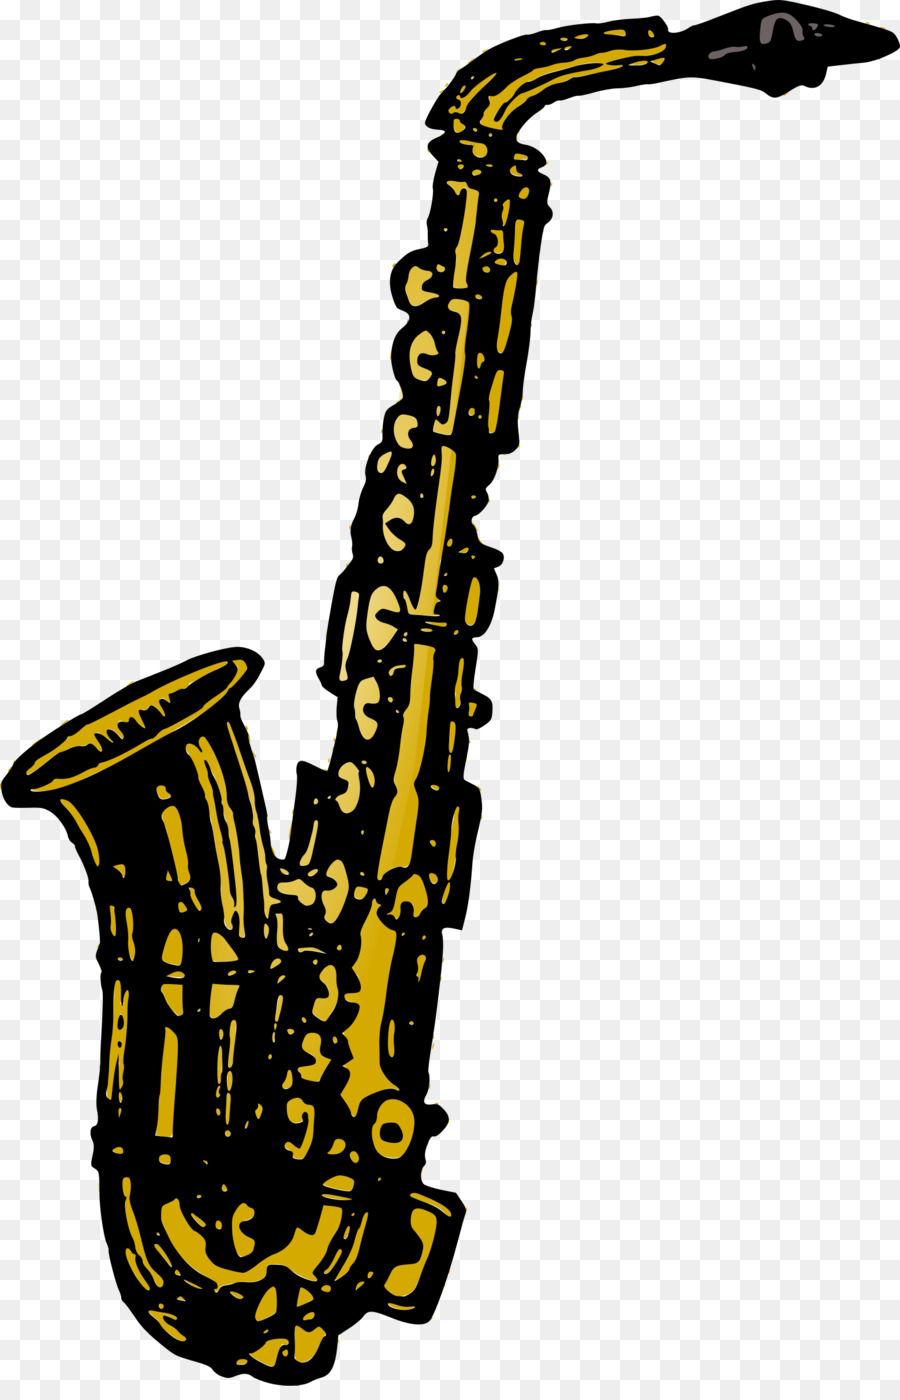 alto saxophone clip art saxophone png download 1559 2400 free rh kisspng com saxophone clip art black and white saxophone clipart black and white